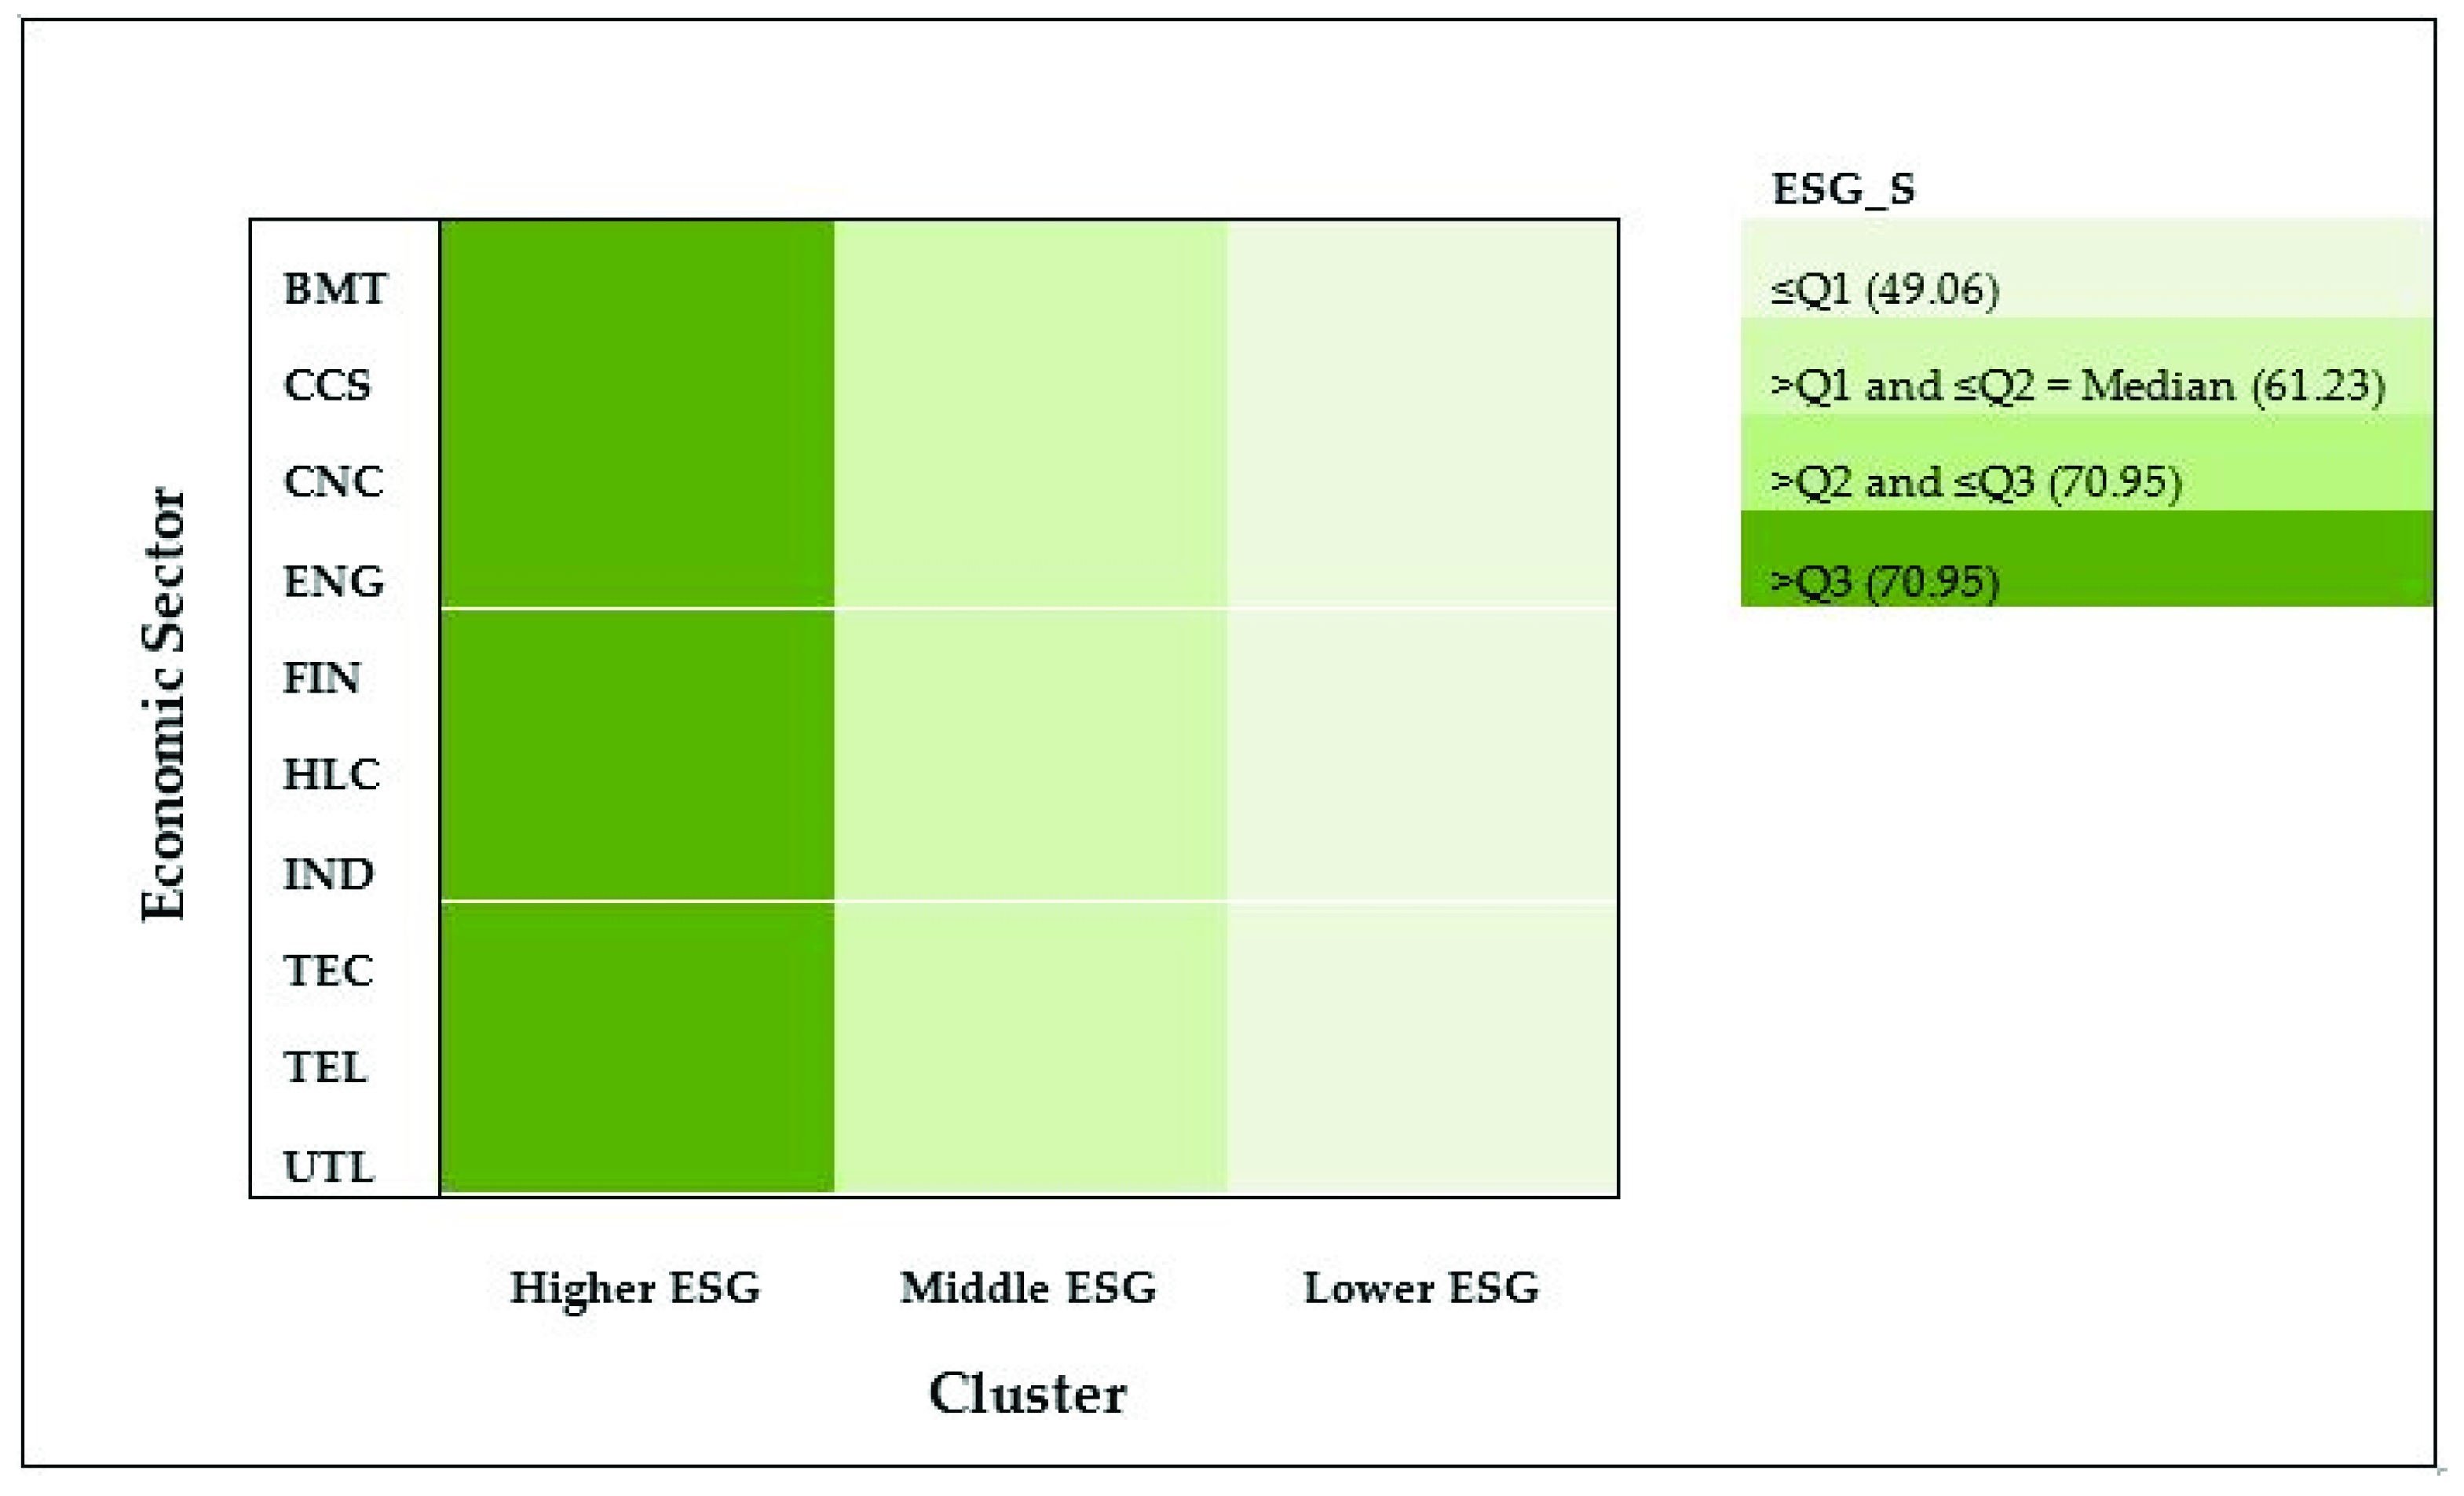 Sustainability   Free Full-Text   Mapping the ESG Behavior of